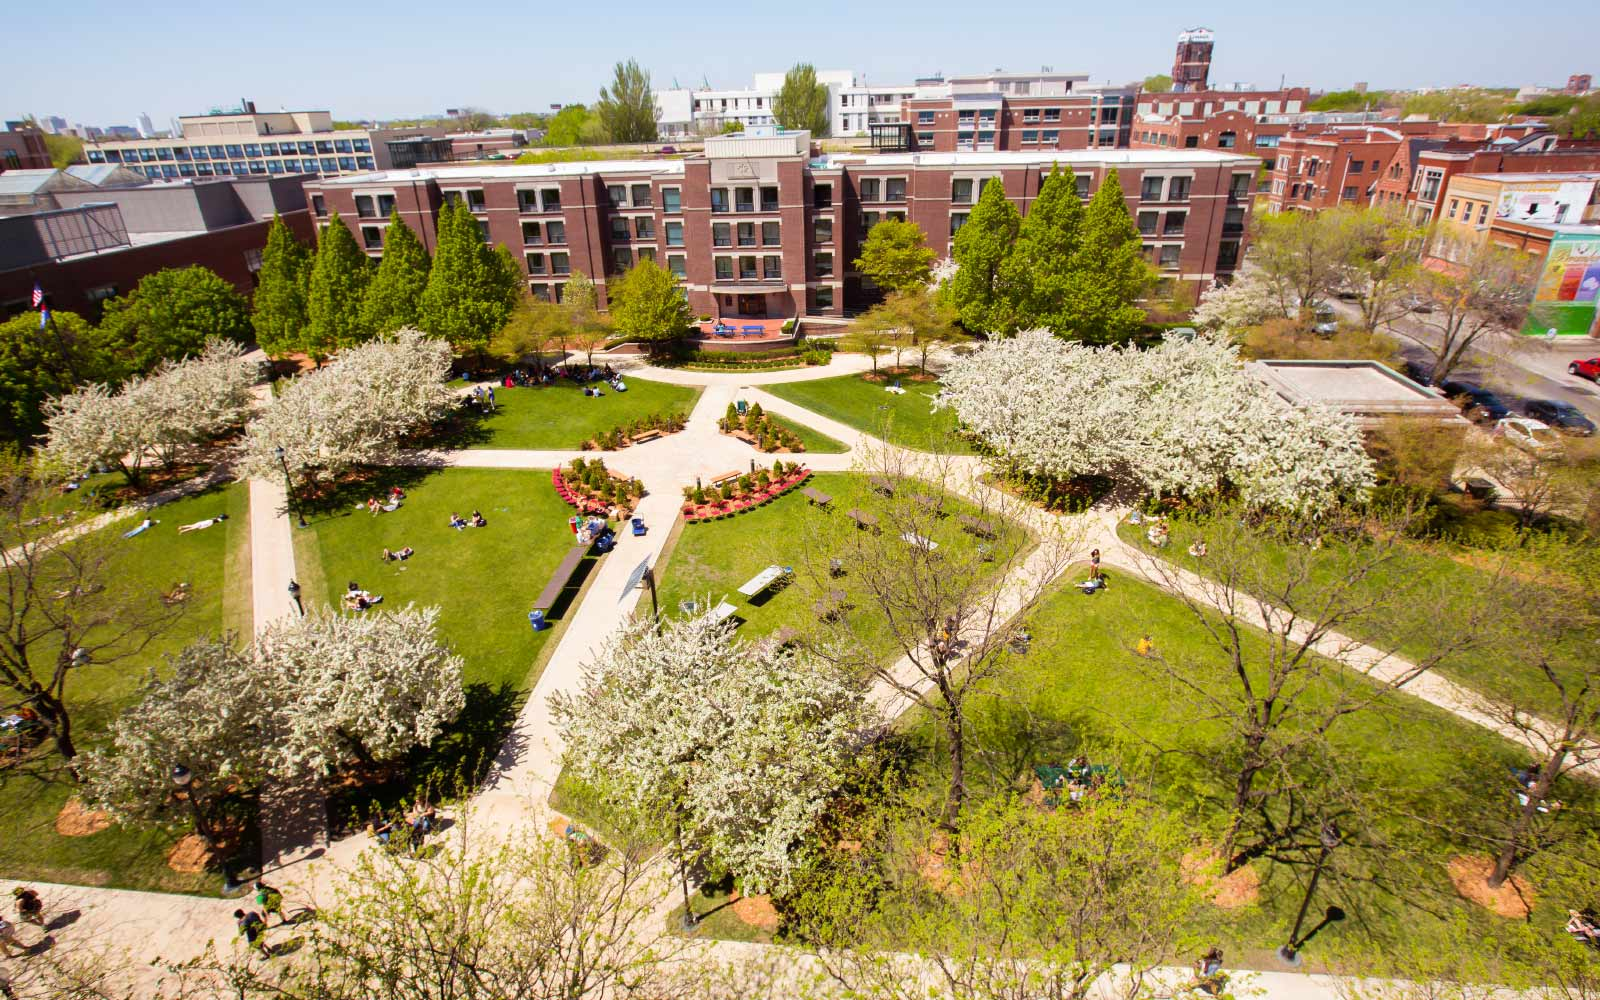 How To Reserve A Room For Depaul Library Loop